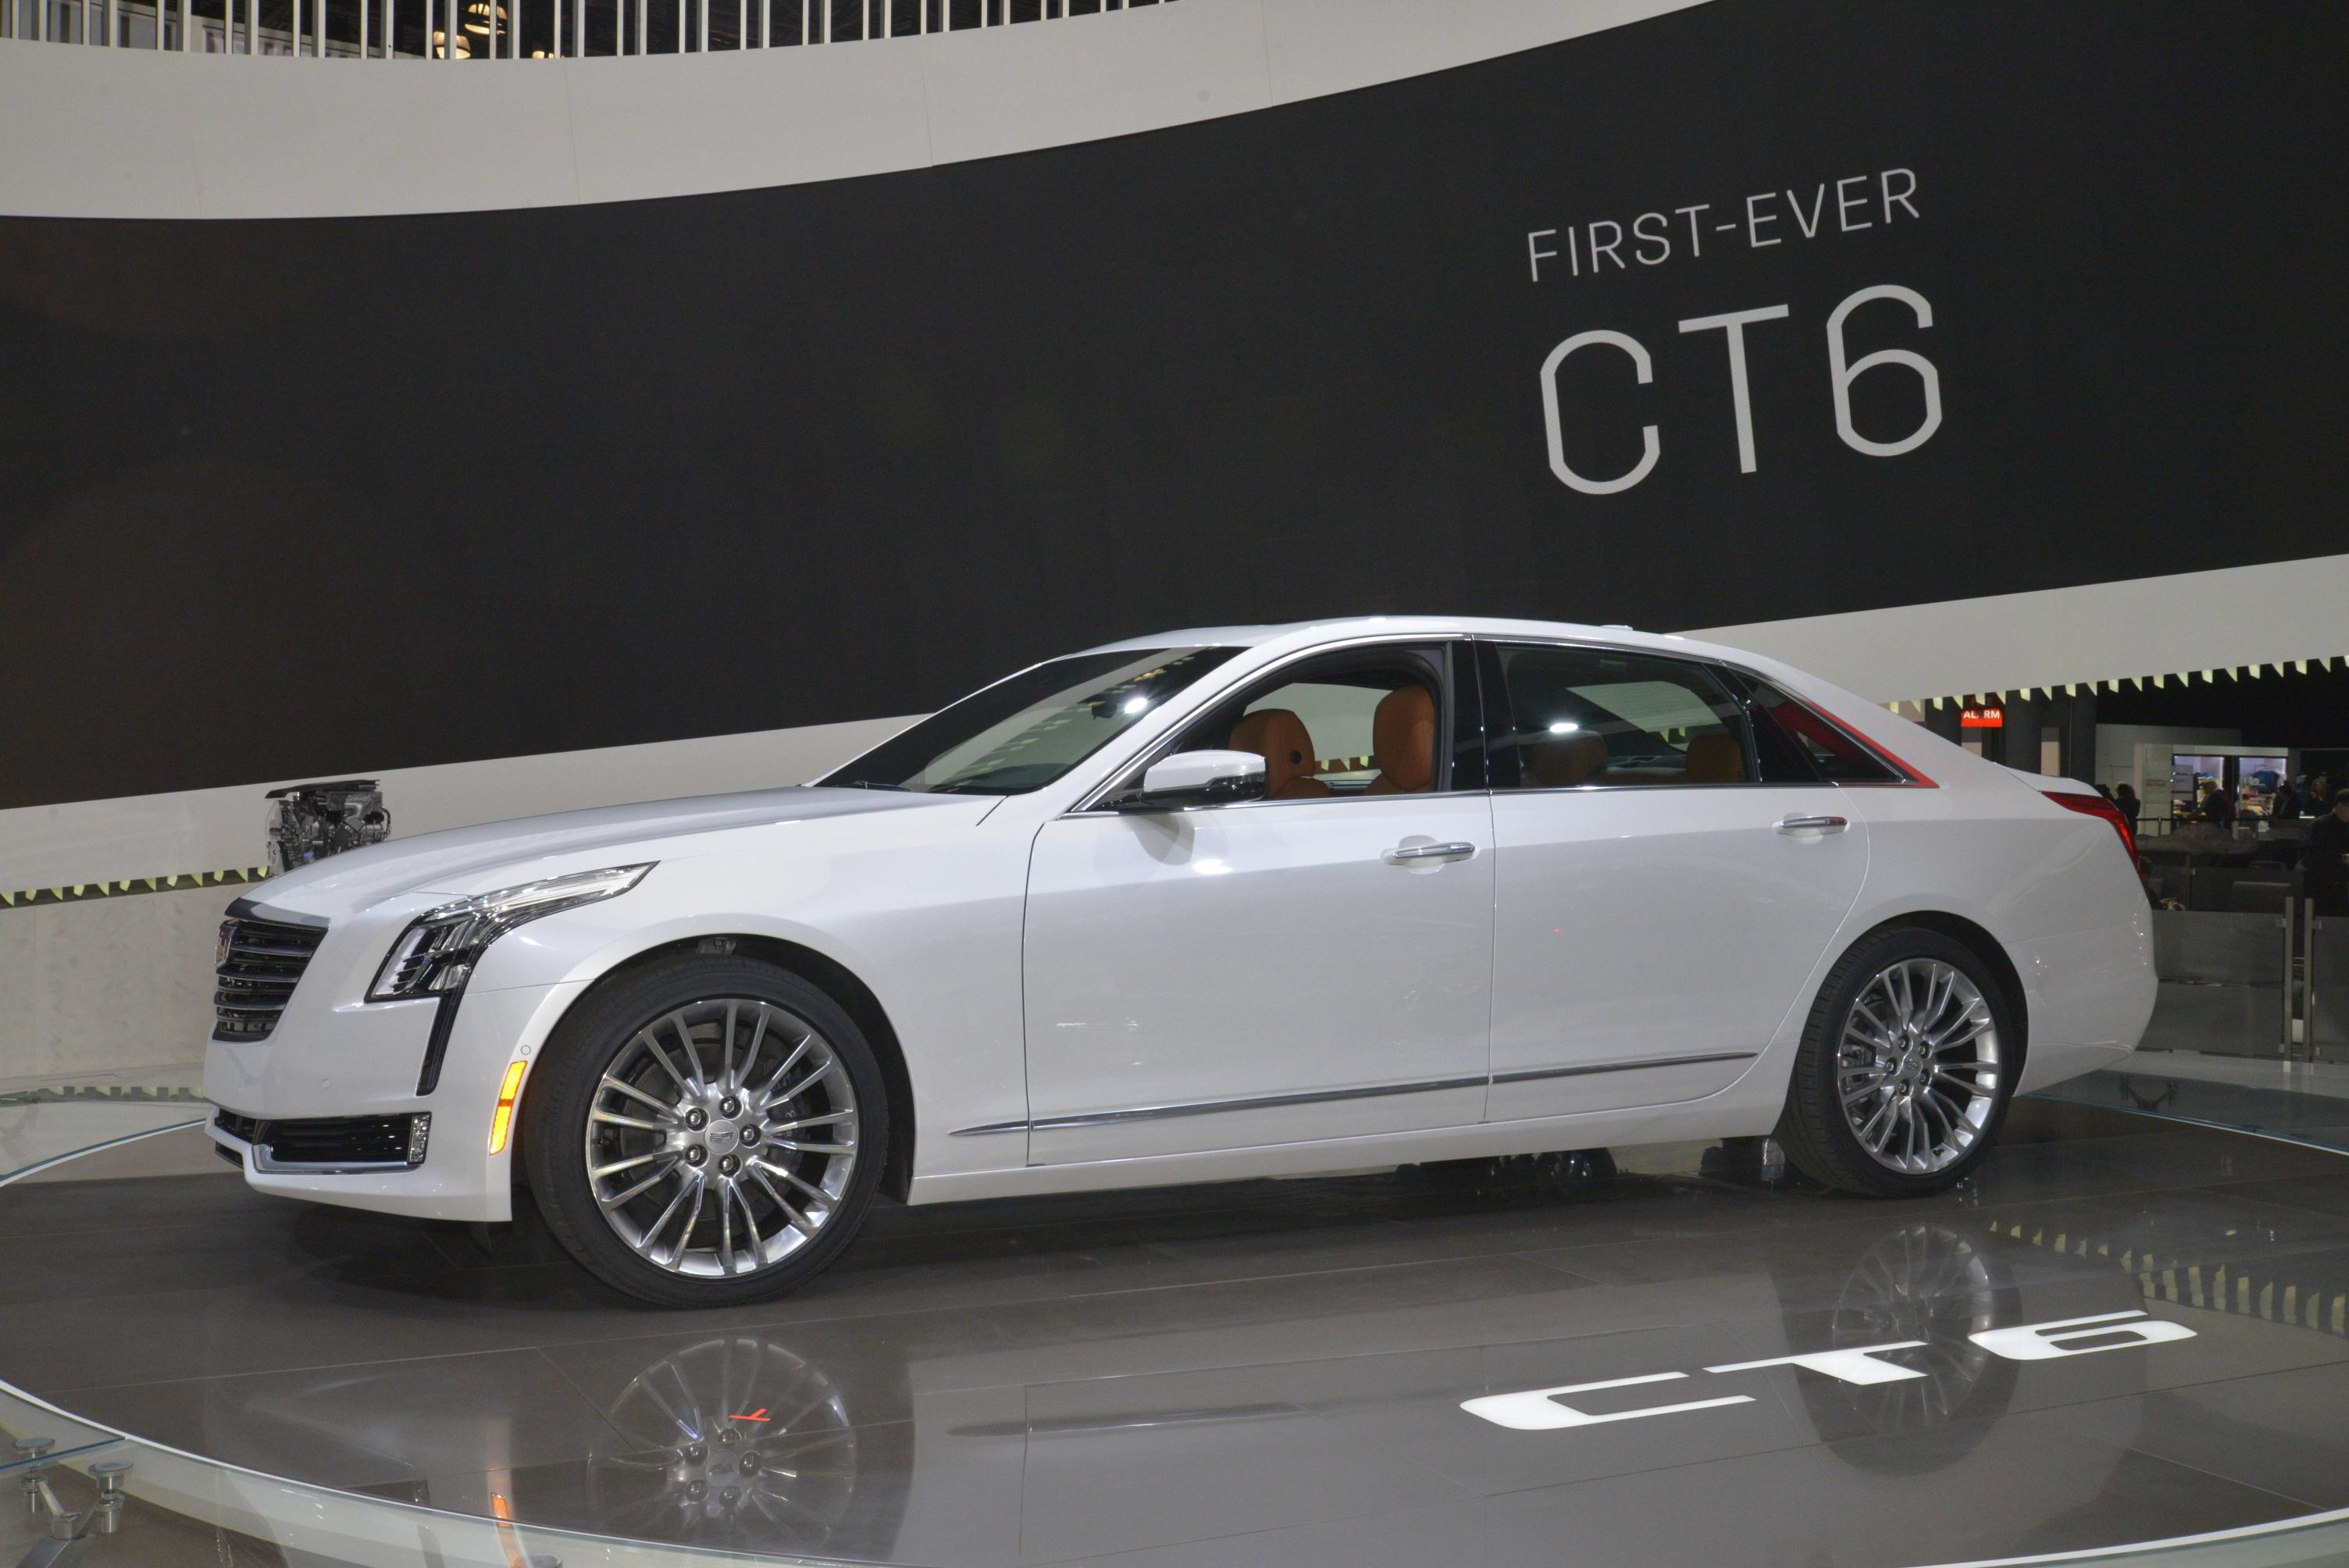 Cadillac Elmiraj Price >> 2016 Cadillac CT6 Leaked Ahead of NYIAS Debut - autoevolution